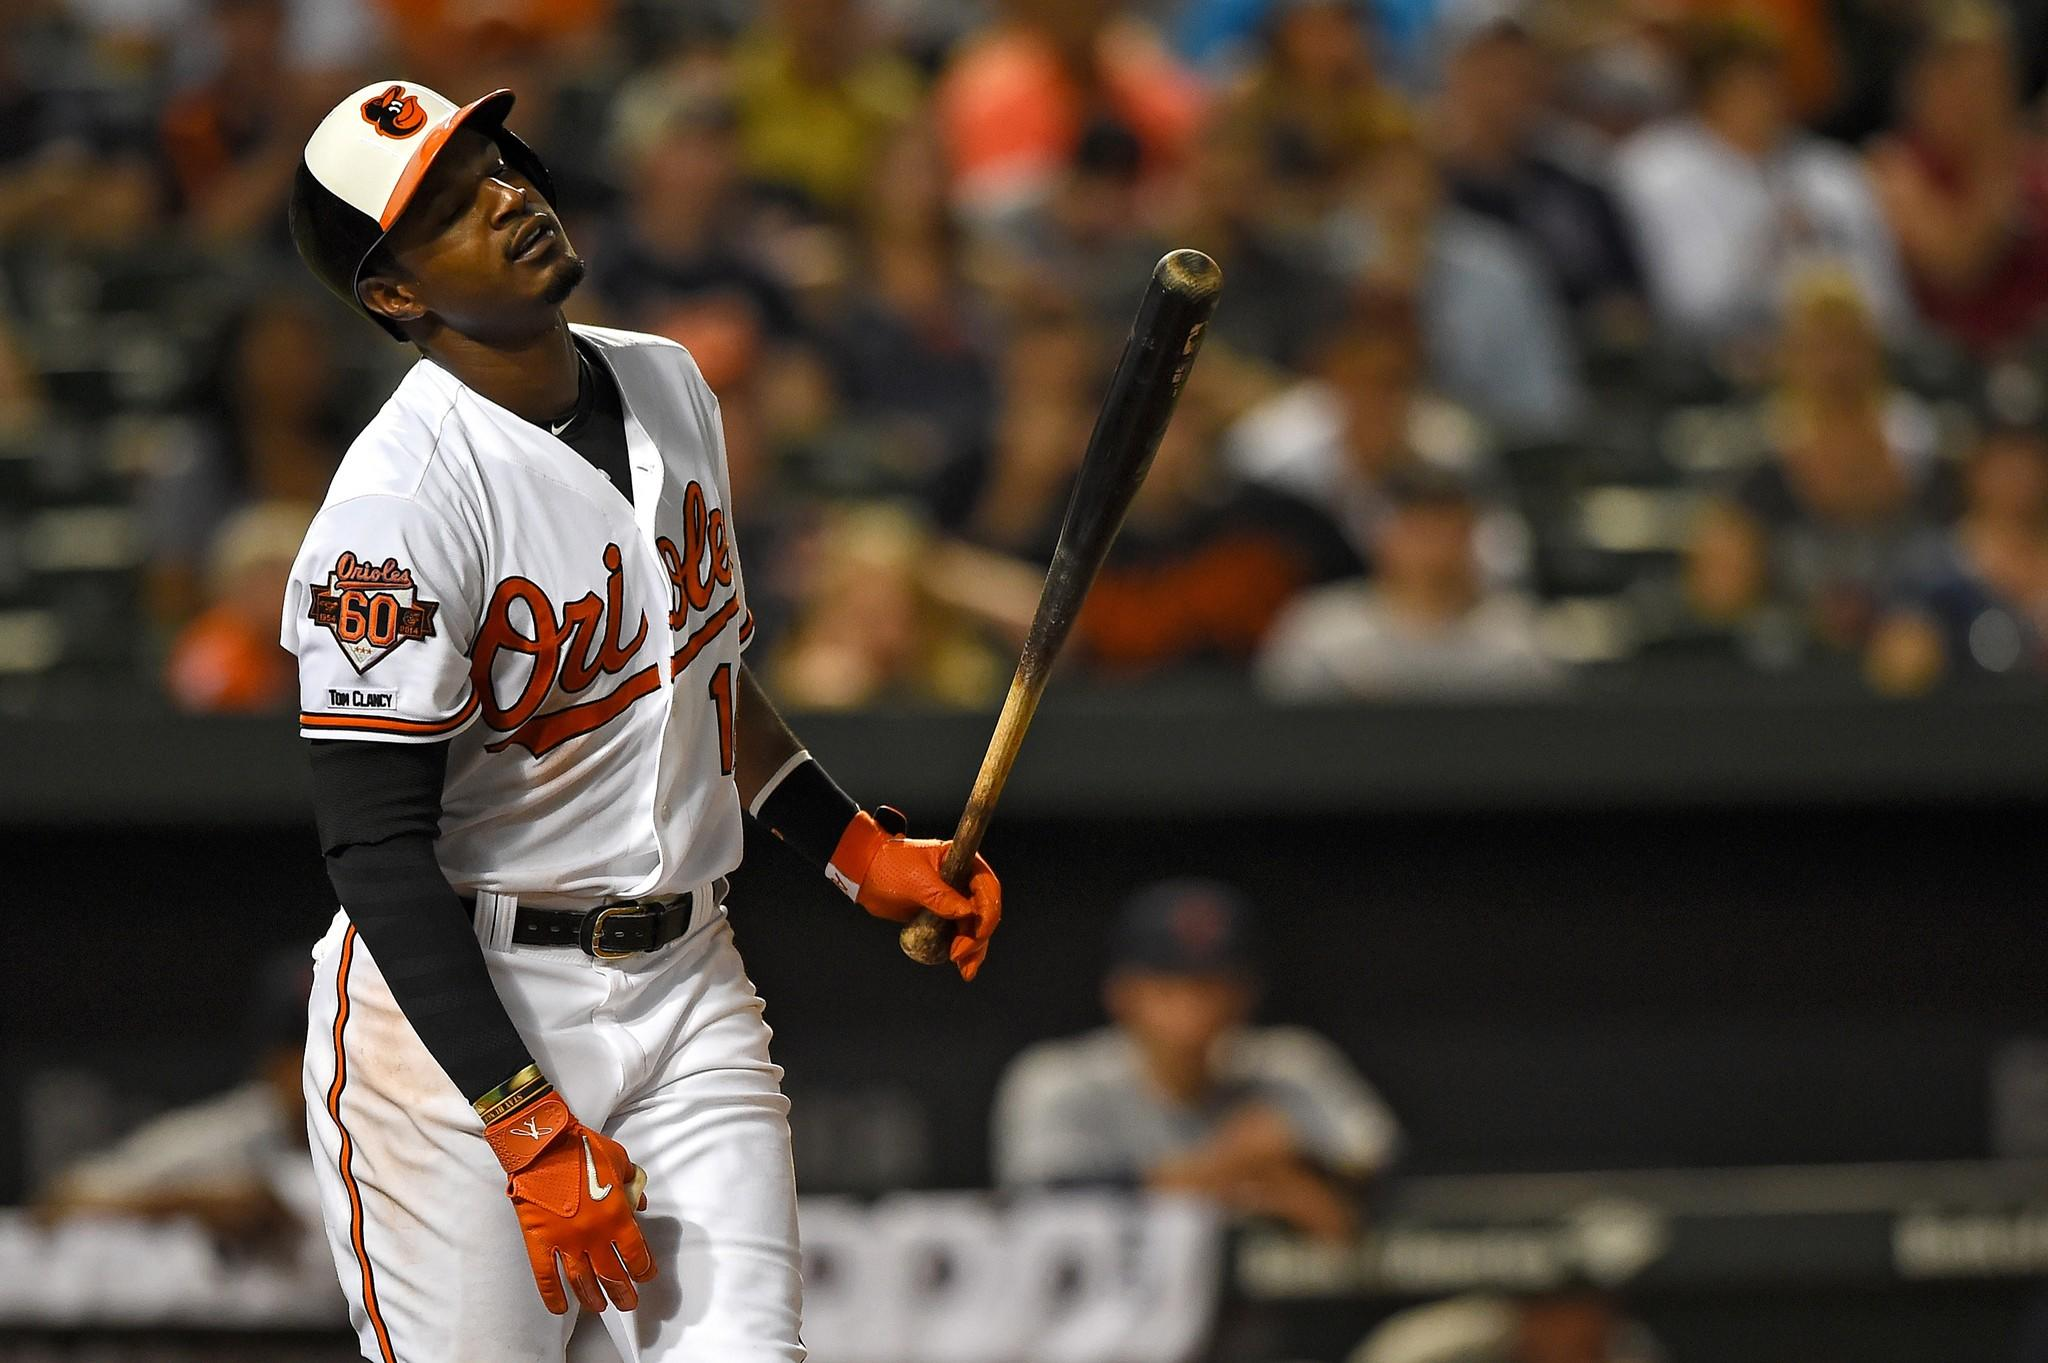 Adam Jones could find himself more pitches to hit if he works a few more walks.